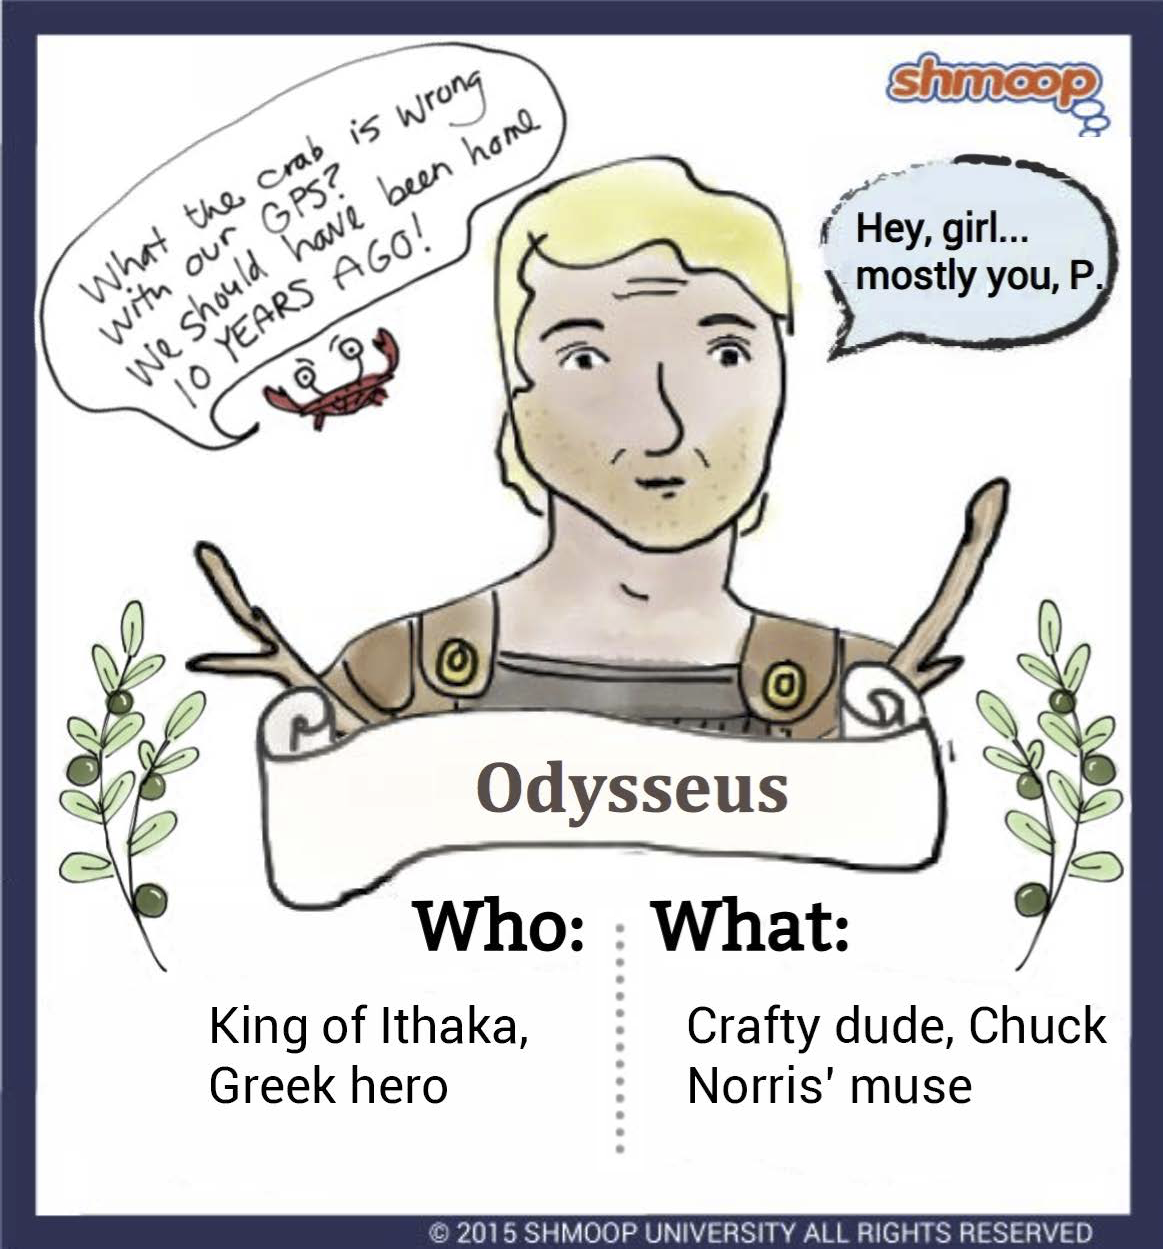 character of penelope in homers odyssey essay Suggested essay topics and study questions for homer's the odyssey study questions & essay topics man's experience enable him to grow as a character.